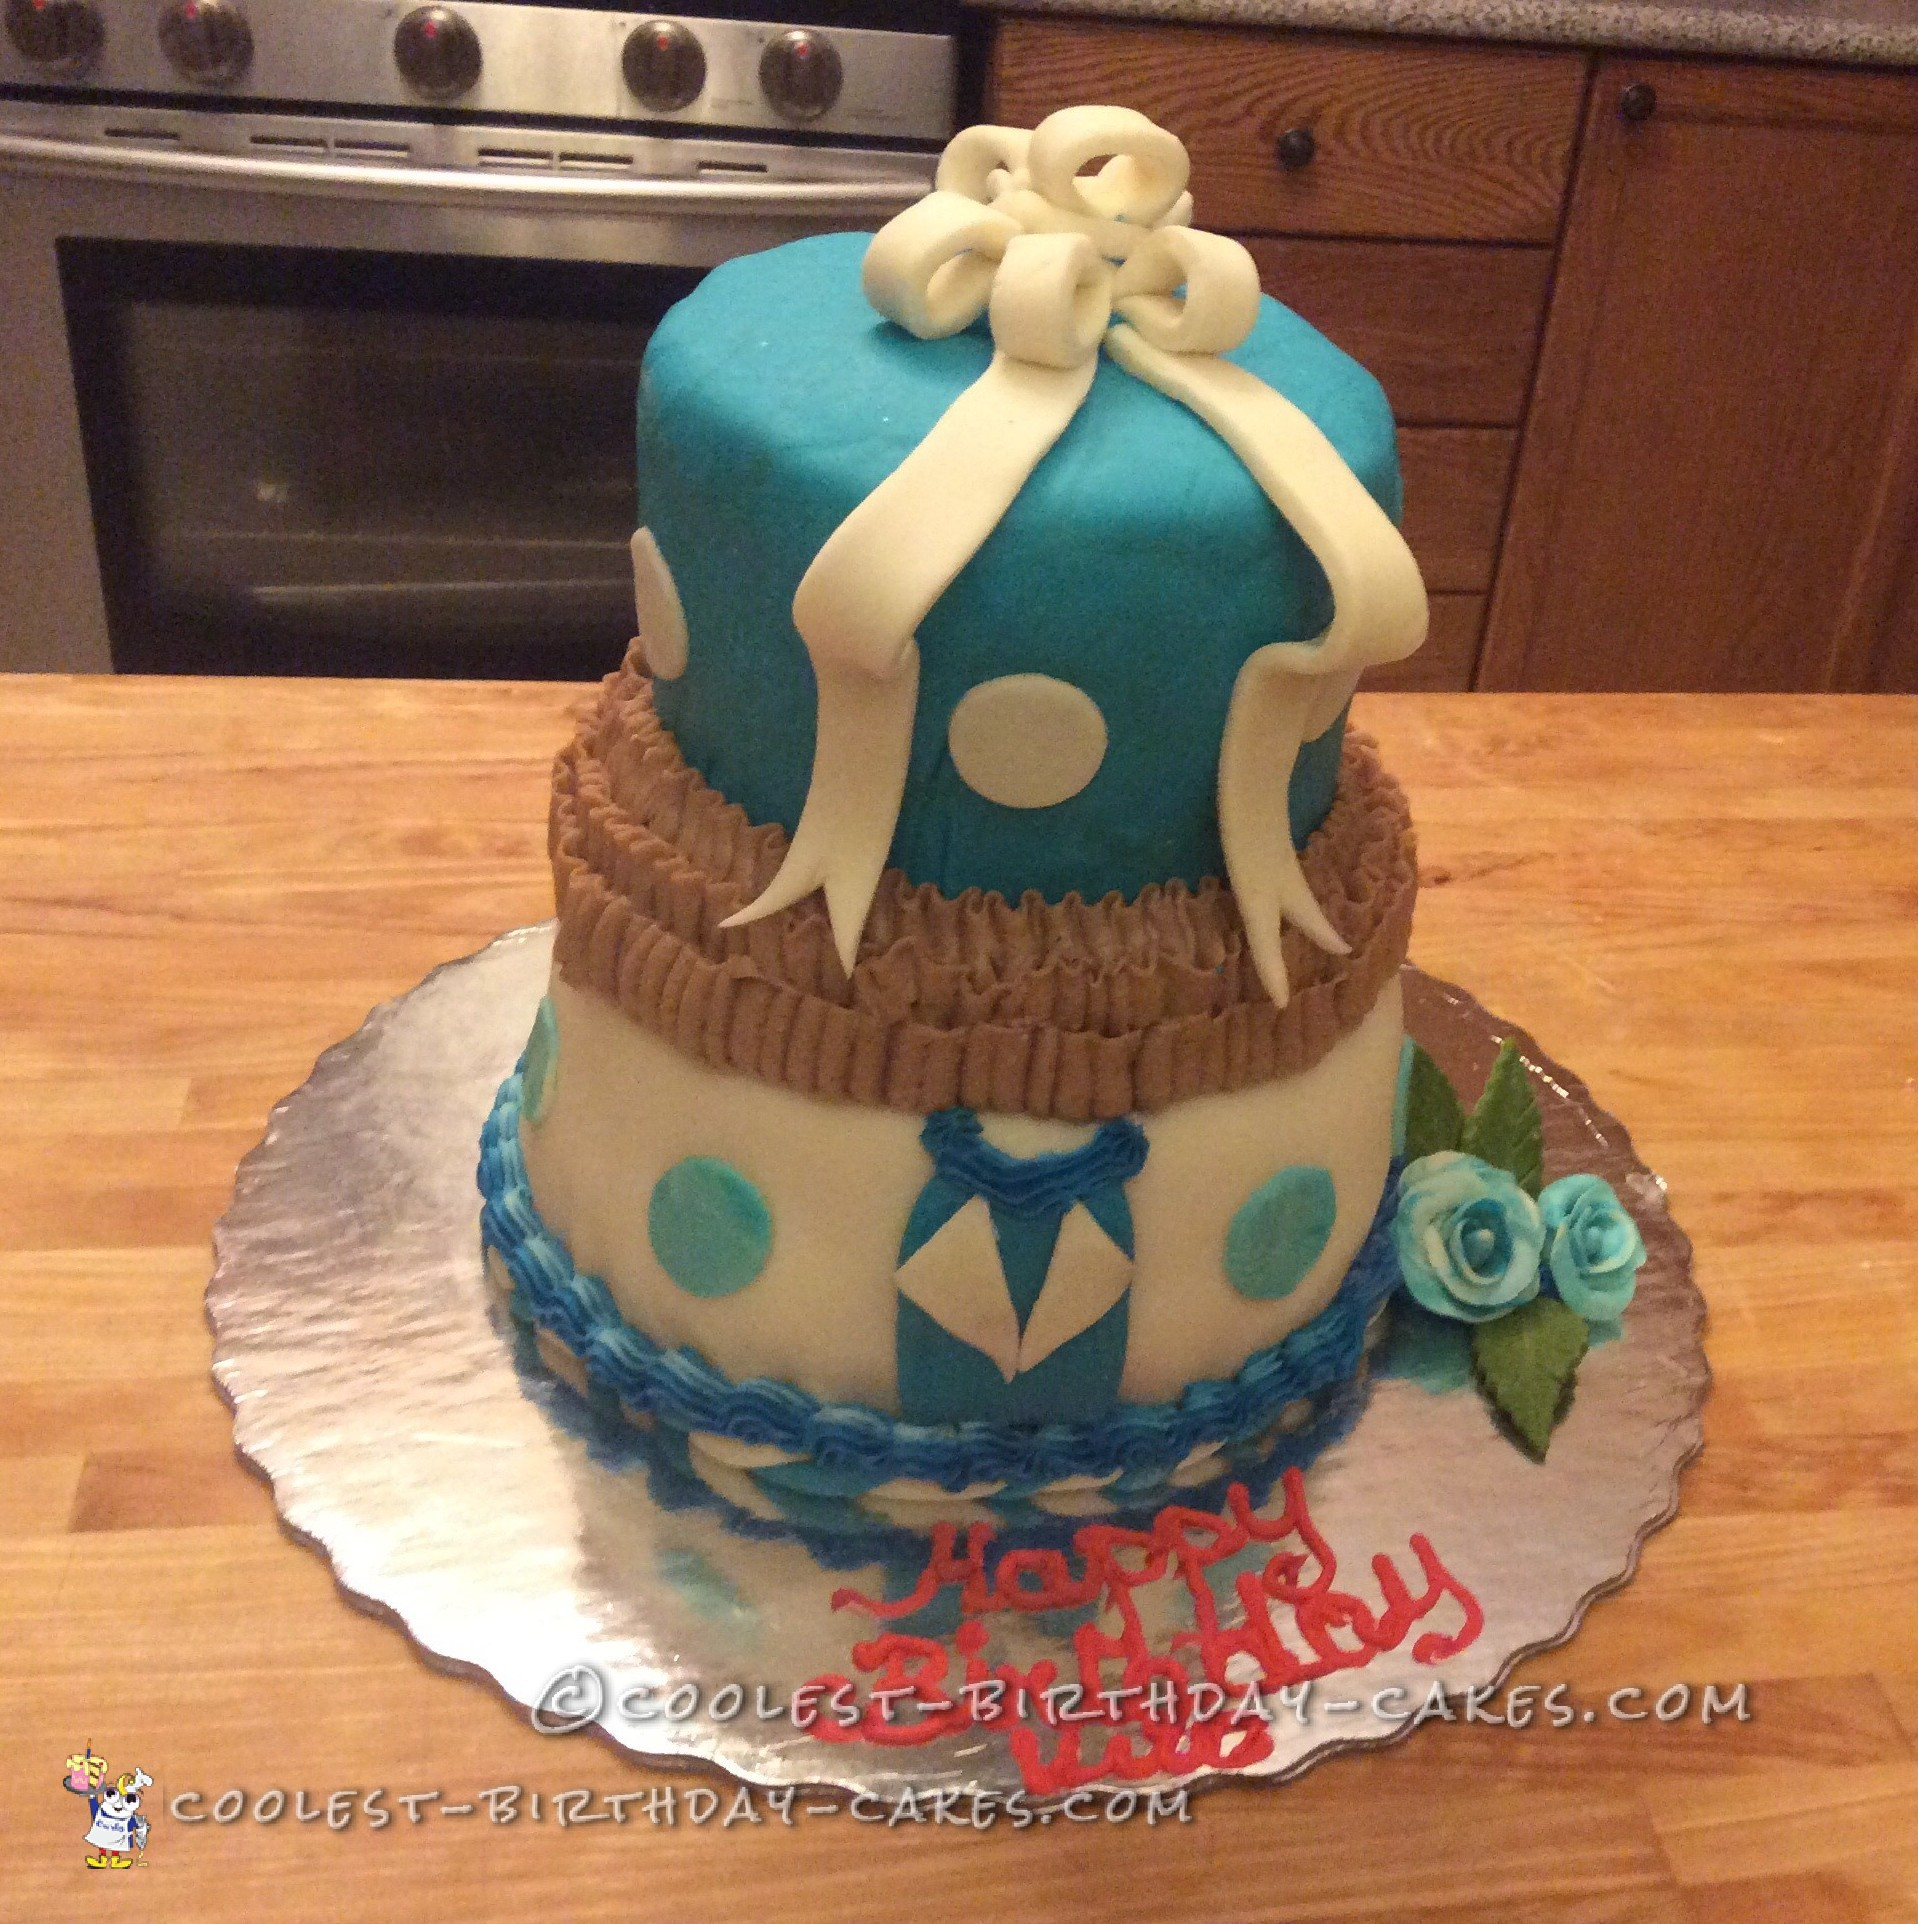 I Recently Joined A Cake Decorating Class At Michaels And Have Learn Lot My Husbands Birthday Was Coming Up Wanted To Make Two Layer